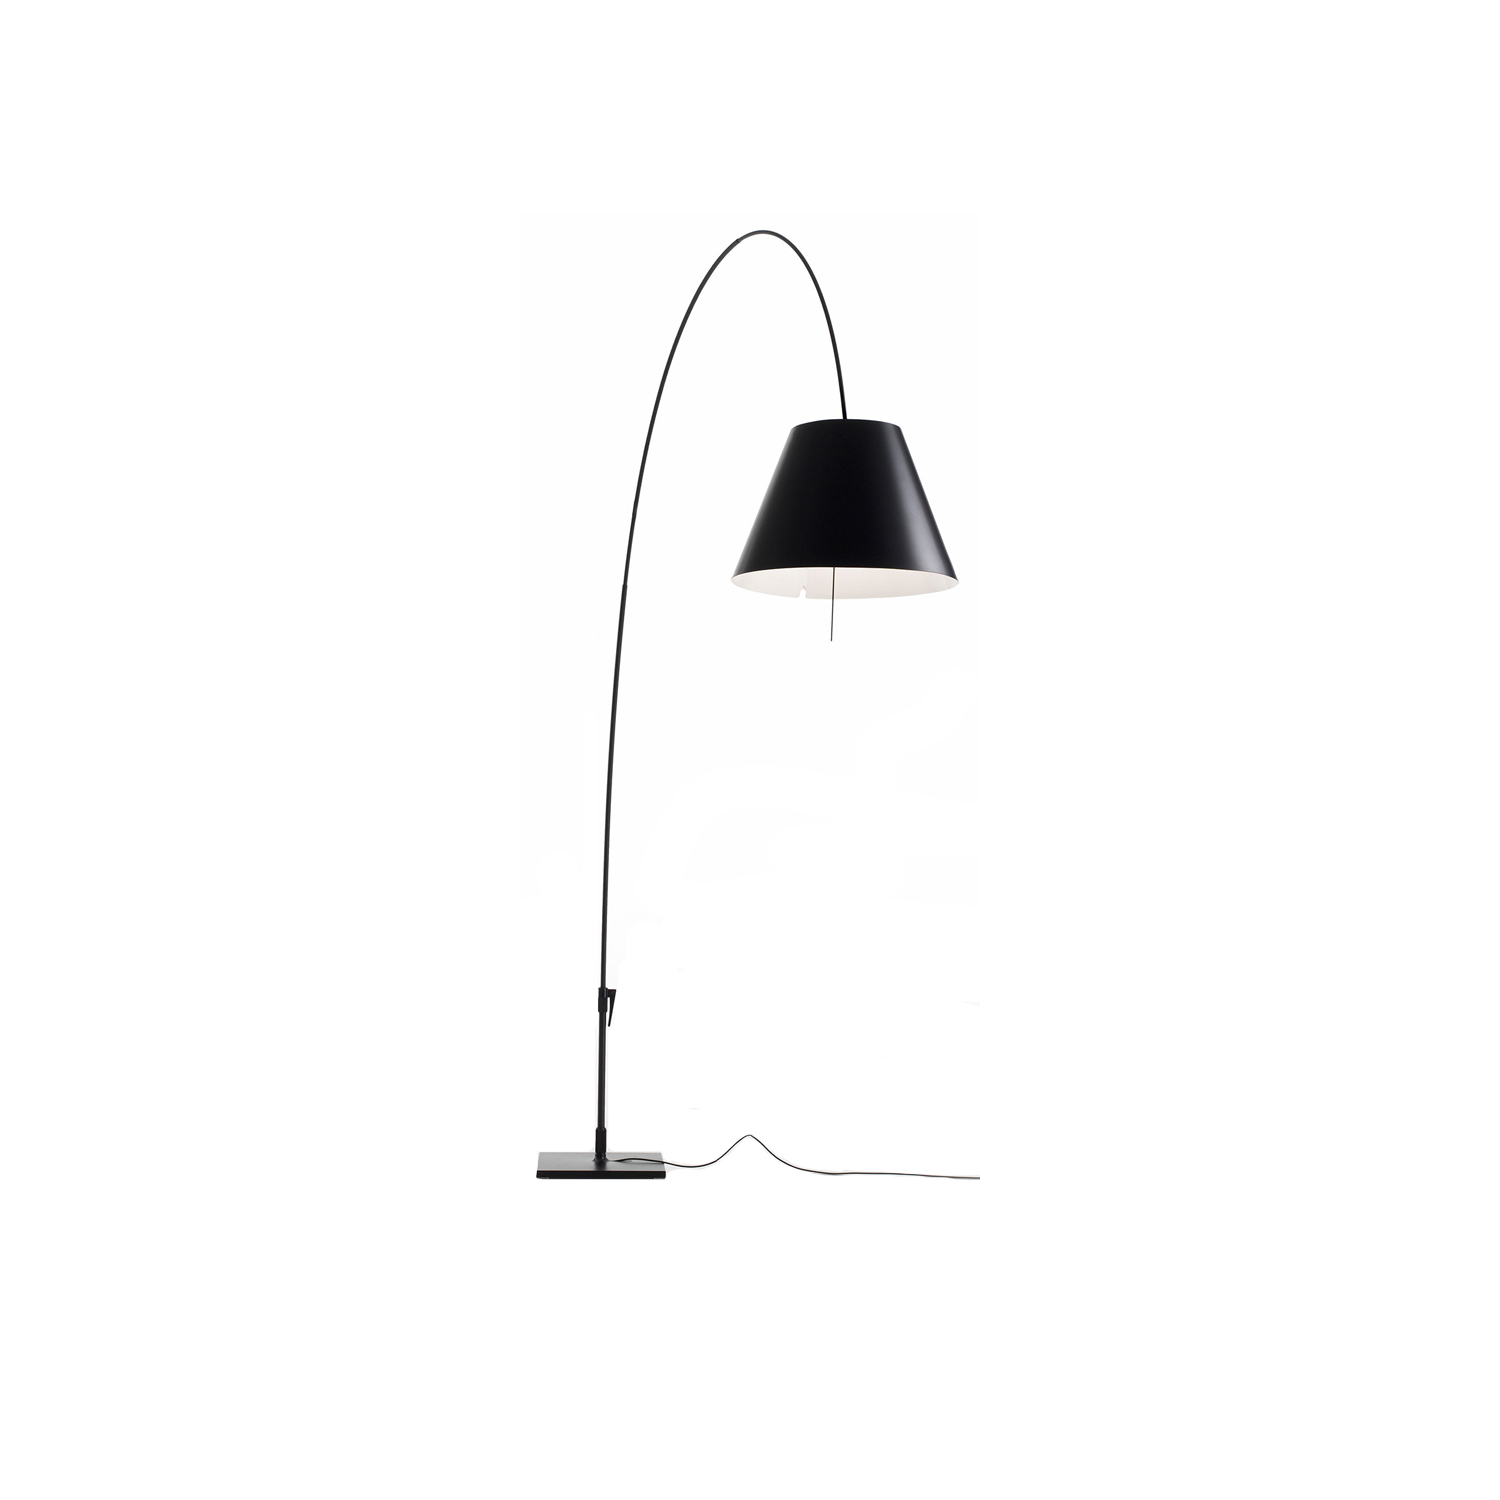 Lady Costanza Floor Lamp -  The telescopic stem and 360° rotation on the base give Lady Costanza elegant poise and flexibility, allowing the user to easily adjust the height and direction of the light. The extraordinarily limited weight of the structure and the handle on the base facilitate movement. | Matter of Stuff